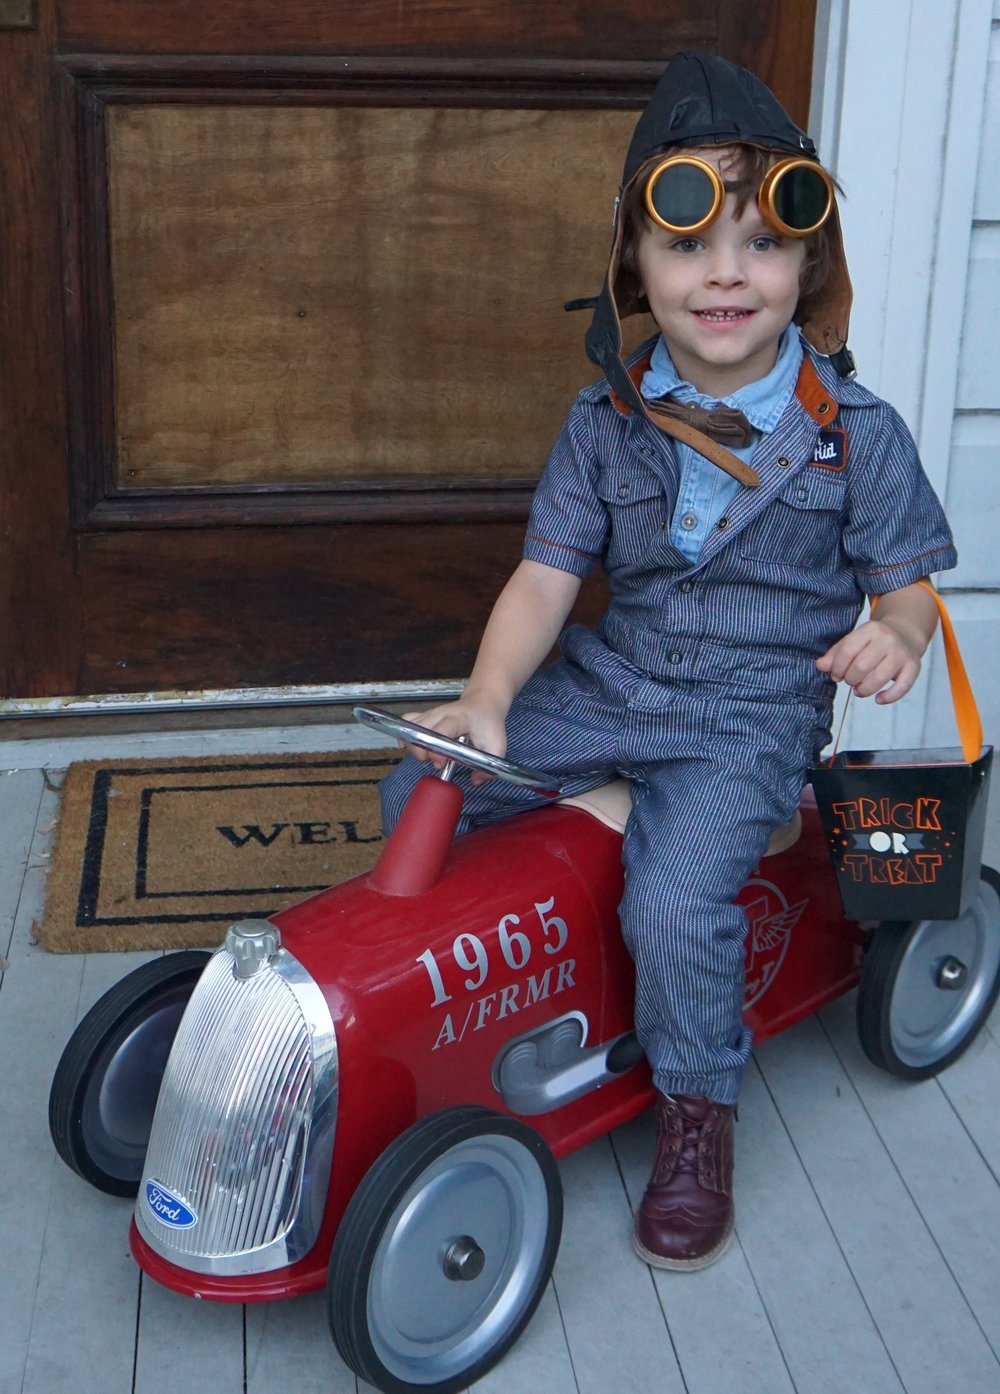 Vintage race car driver costume.JPG